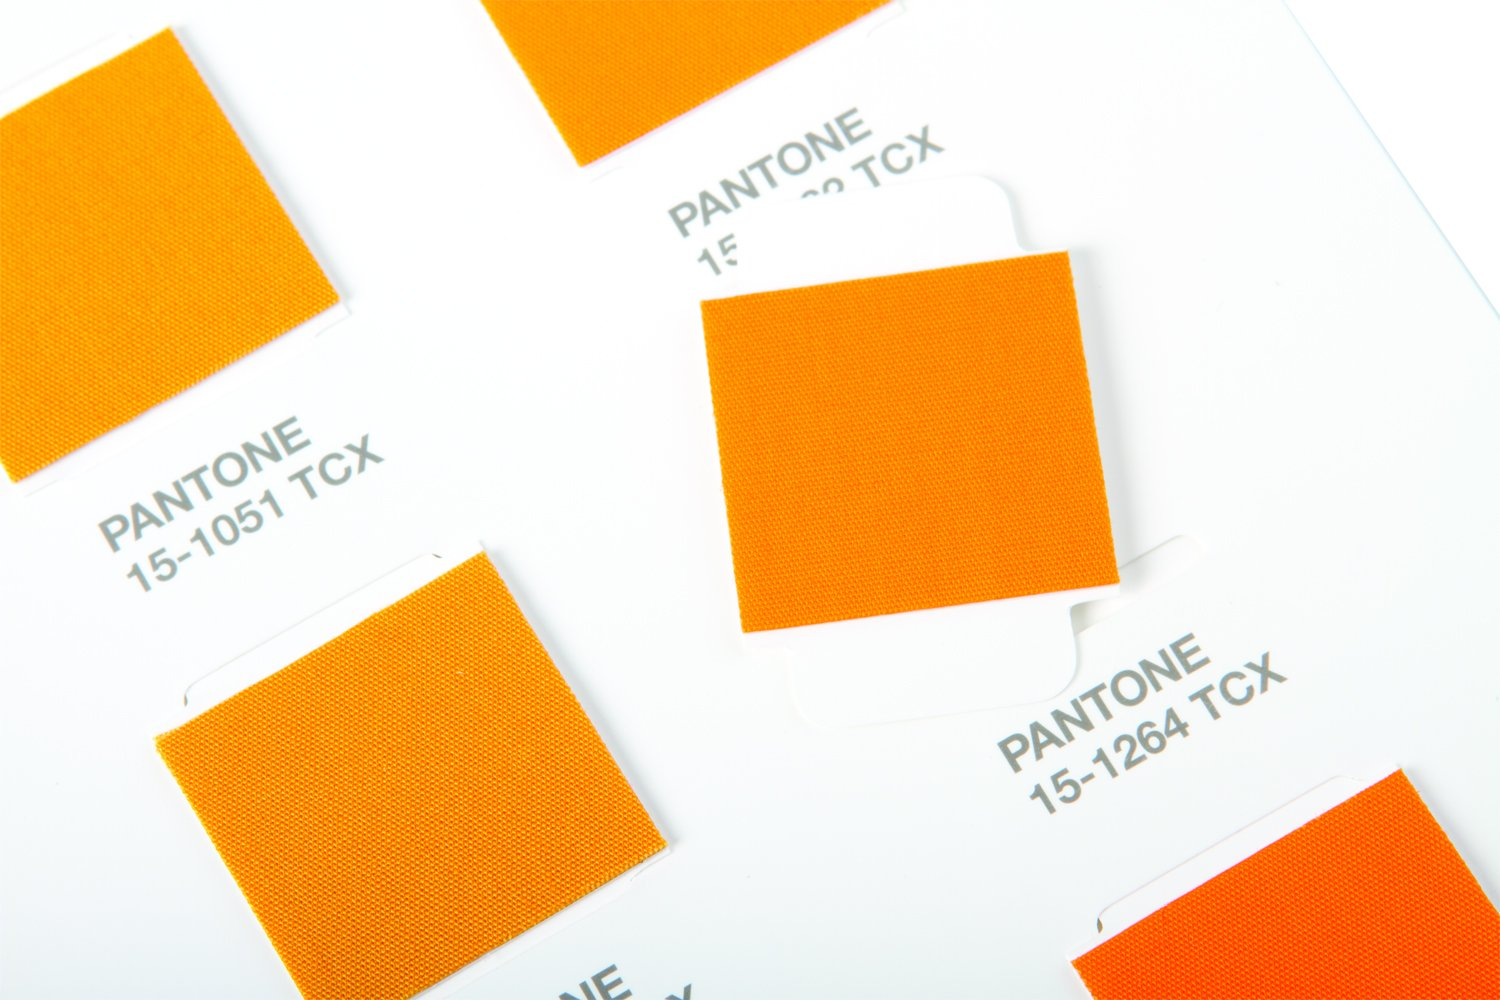 Pantone Cotton Chip Set Supplement, FHIC410